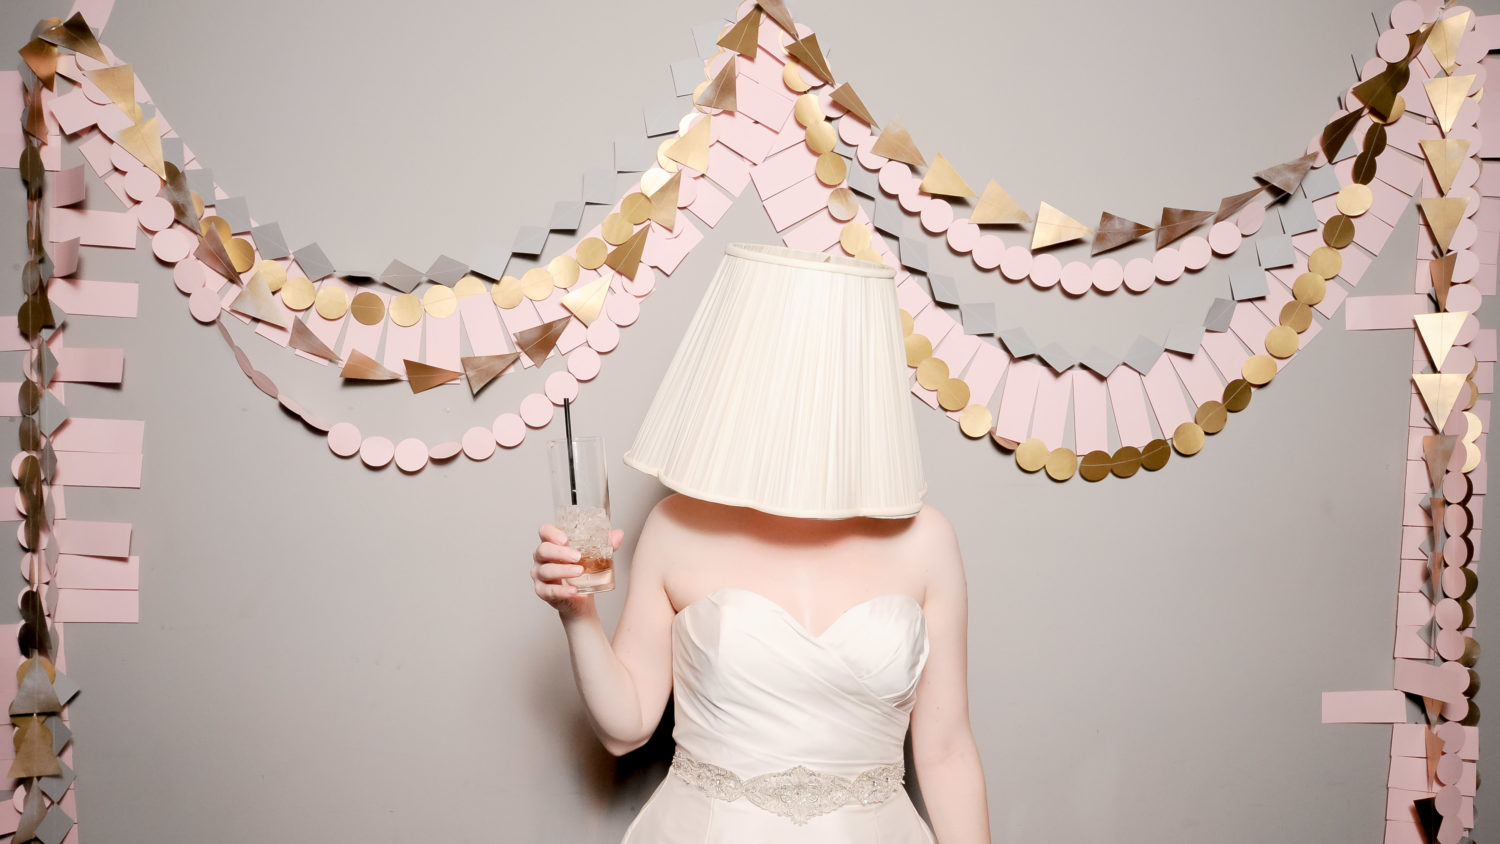 lampshade on head in funny wedding photo booth